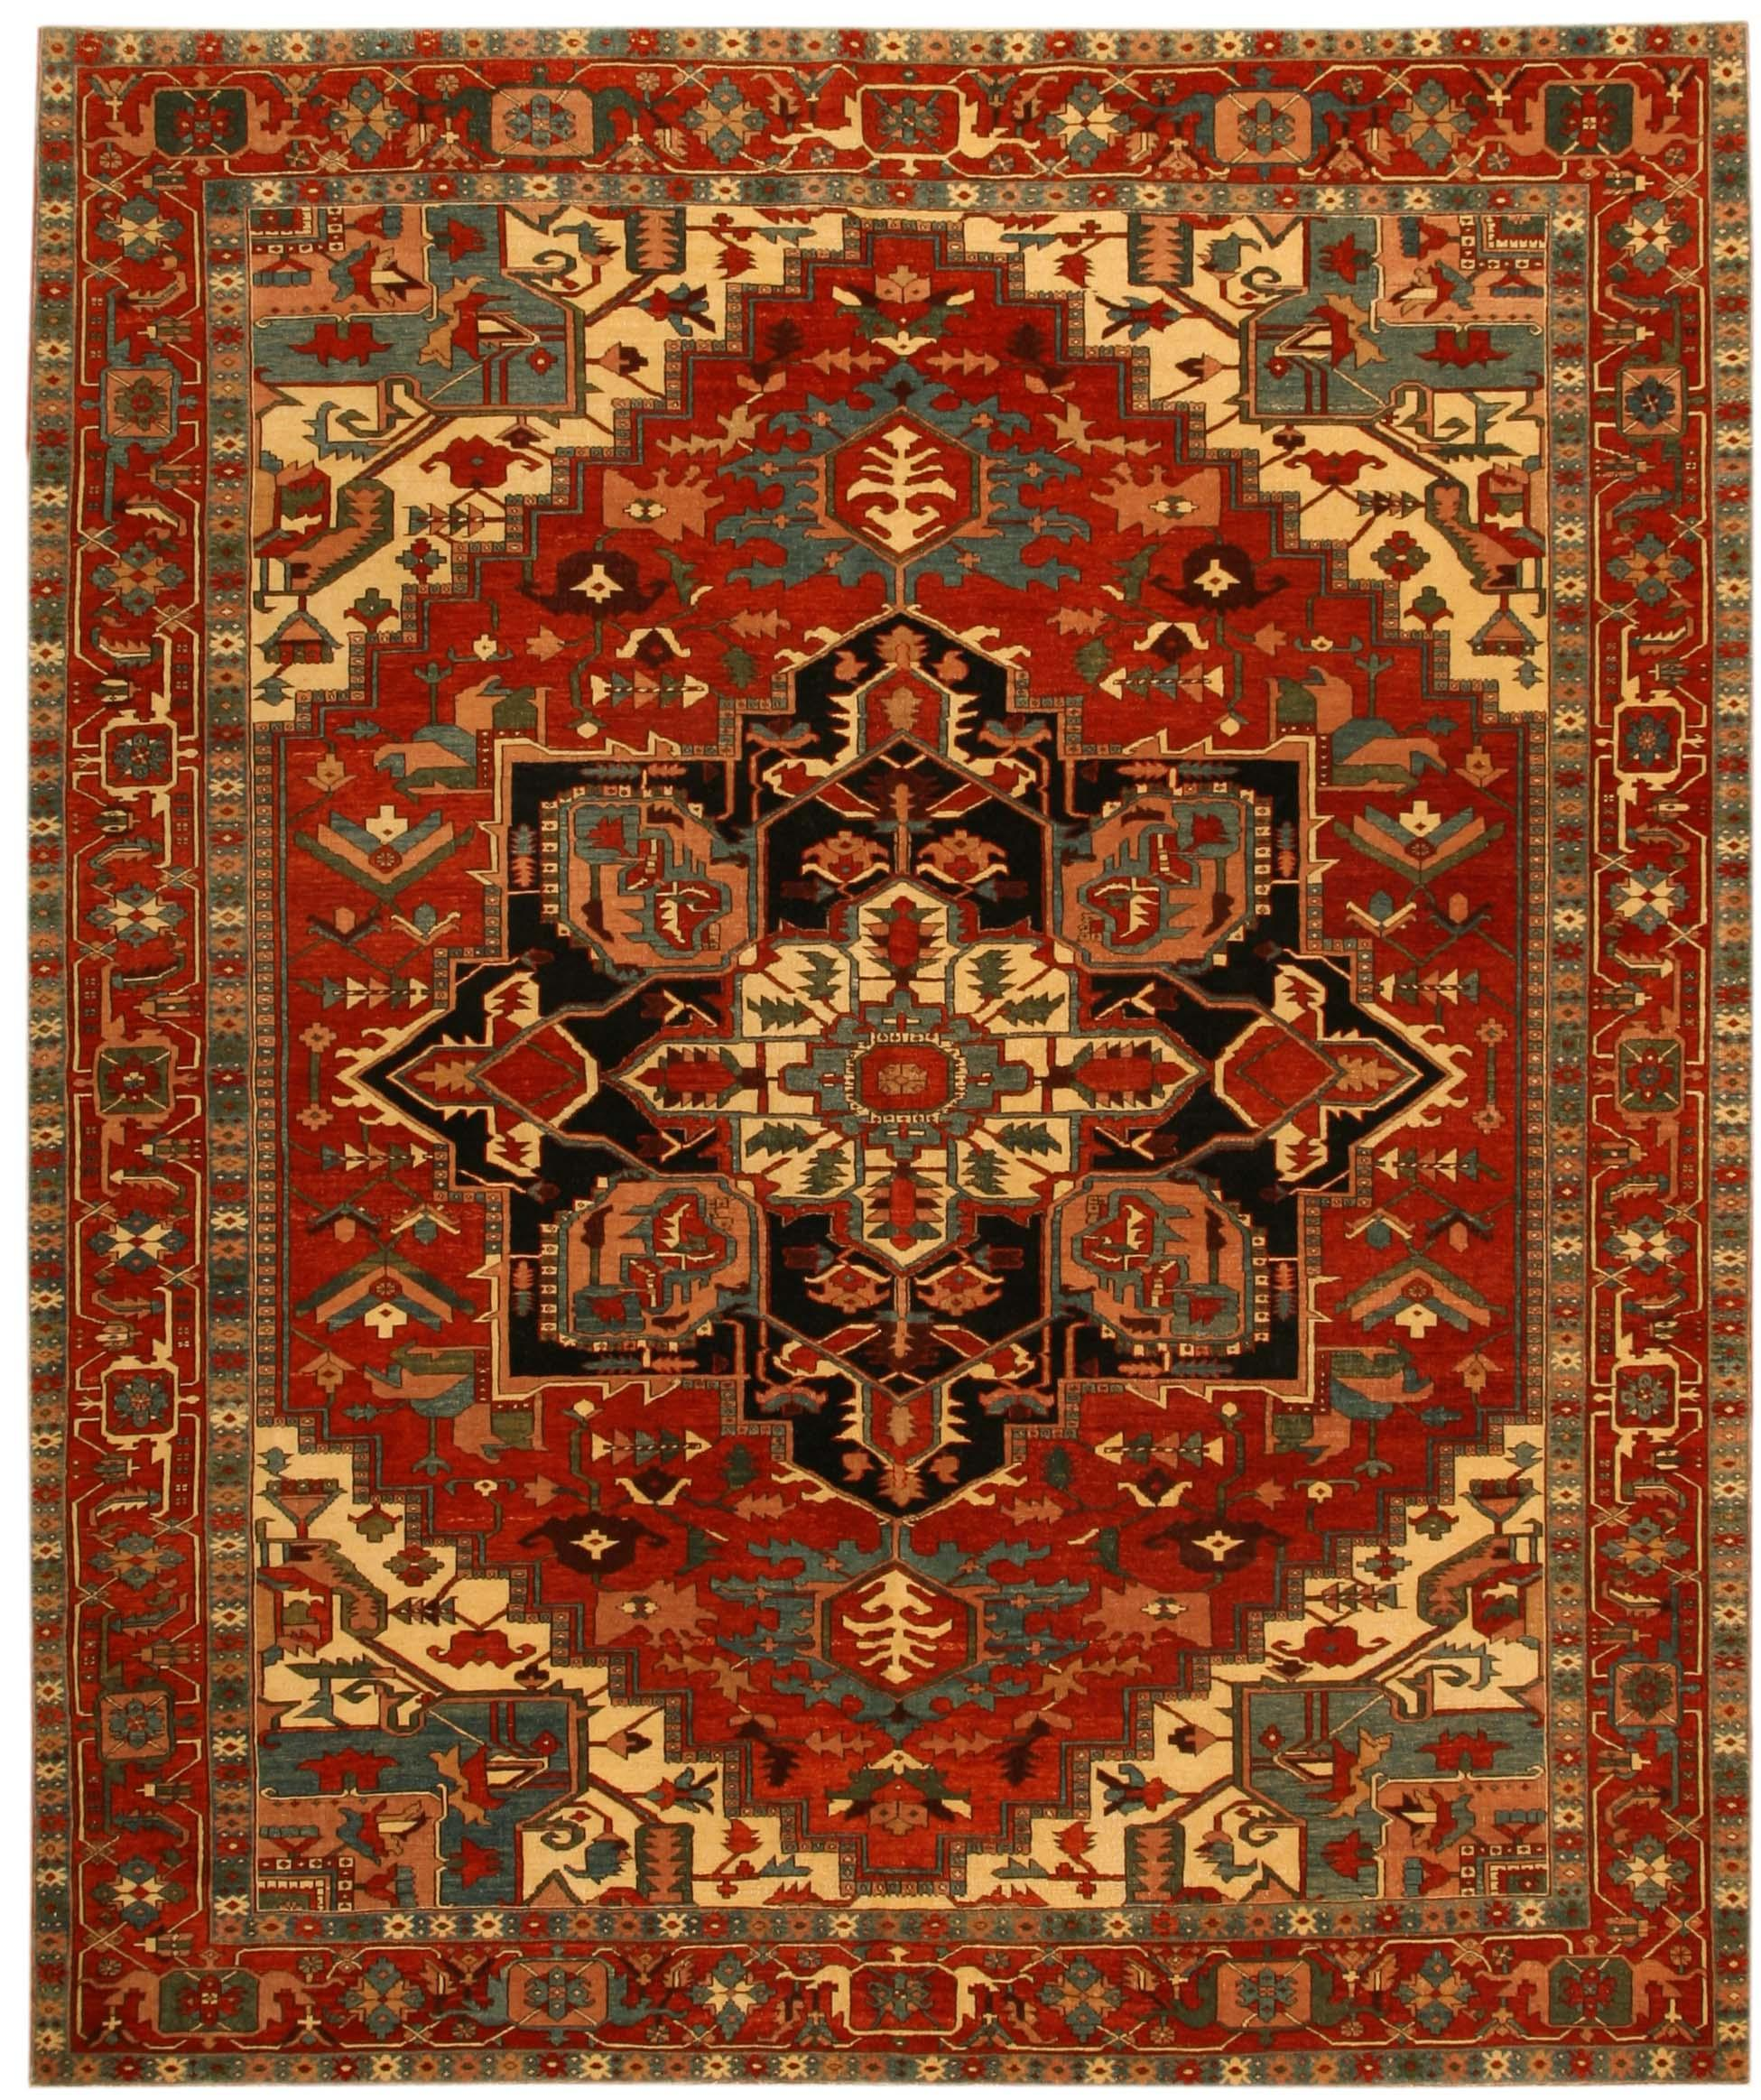 Turkish carpets heriz design turkish rug / carpet 17823. loading zoom VEHTVDT